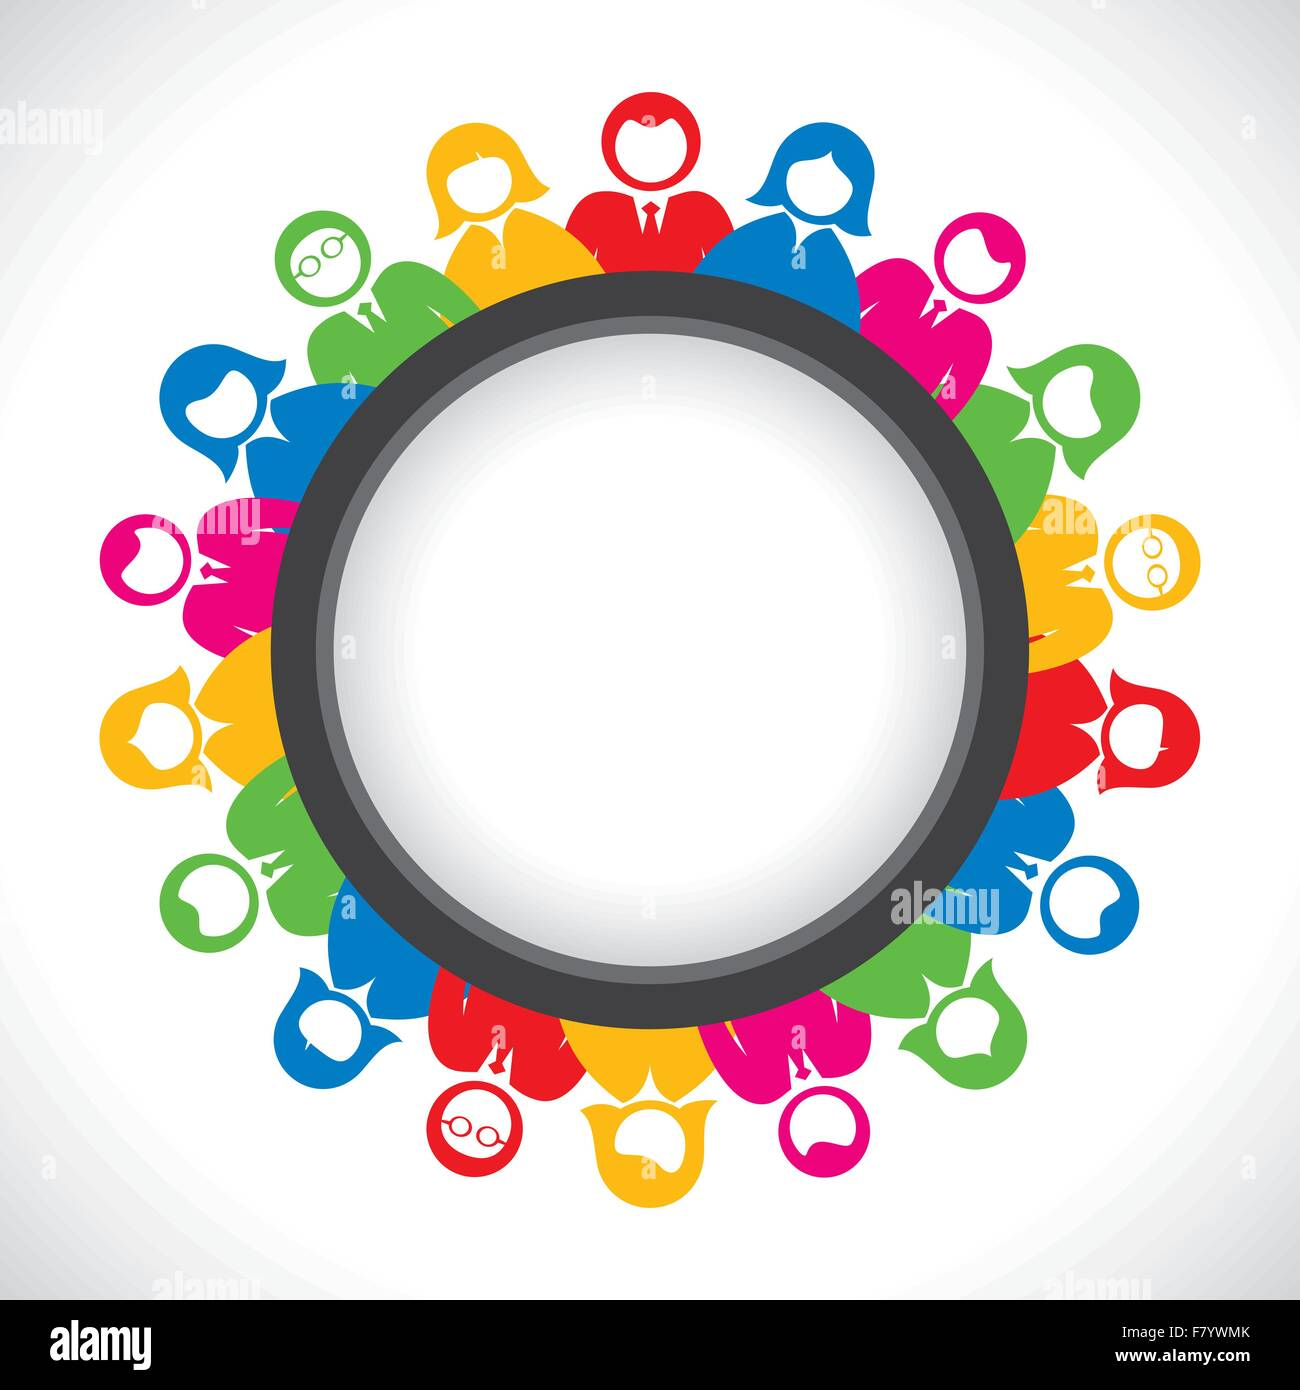 Round meeting table world map stock photos round meeting table colorful business men and women arrange in round table stock image gumiabroncs Images